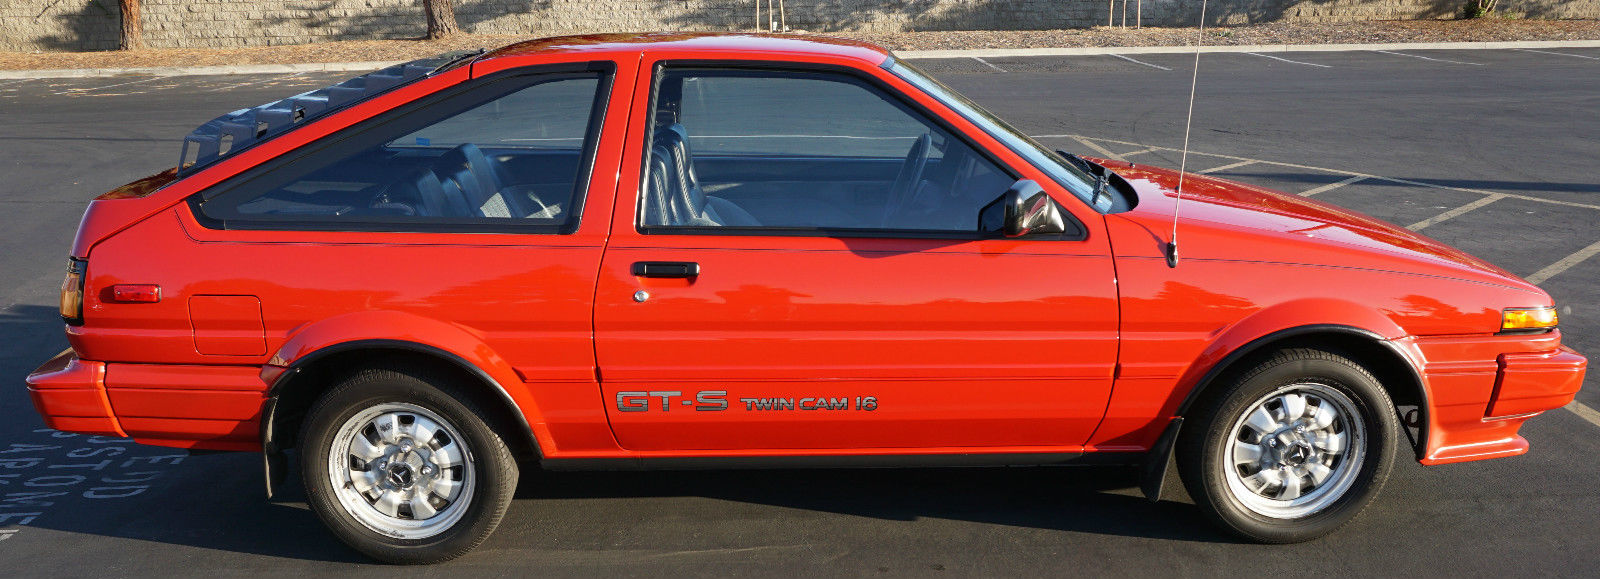 For the purist drifter 1986 toyota corolla sport gt s for sale on 24 photos publicscrutiny Images